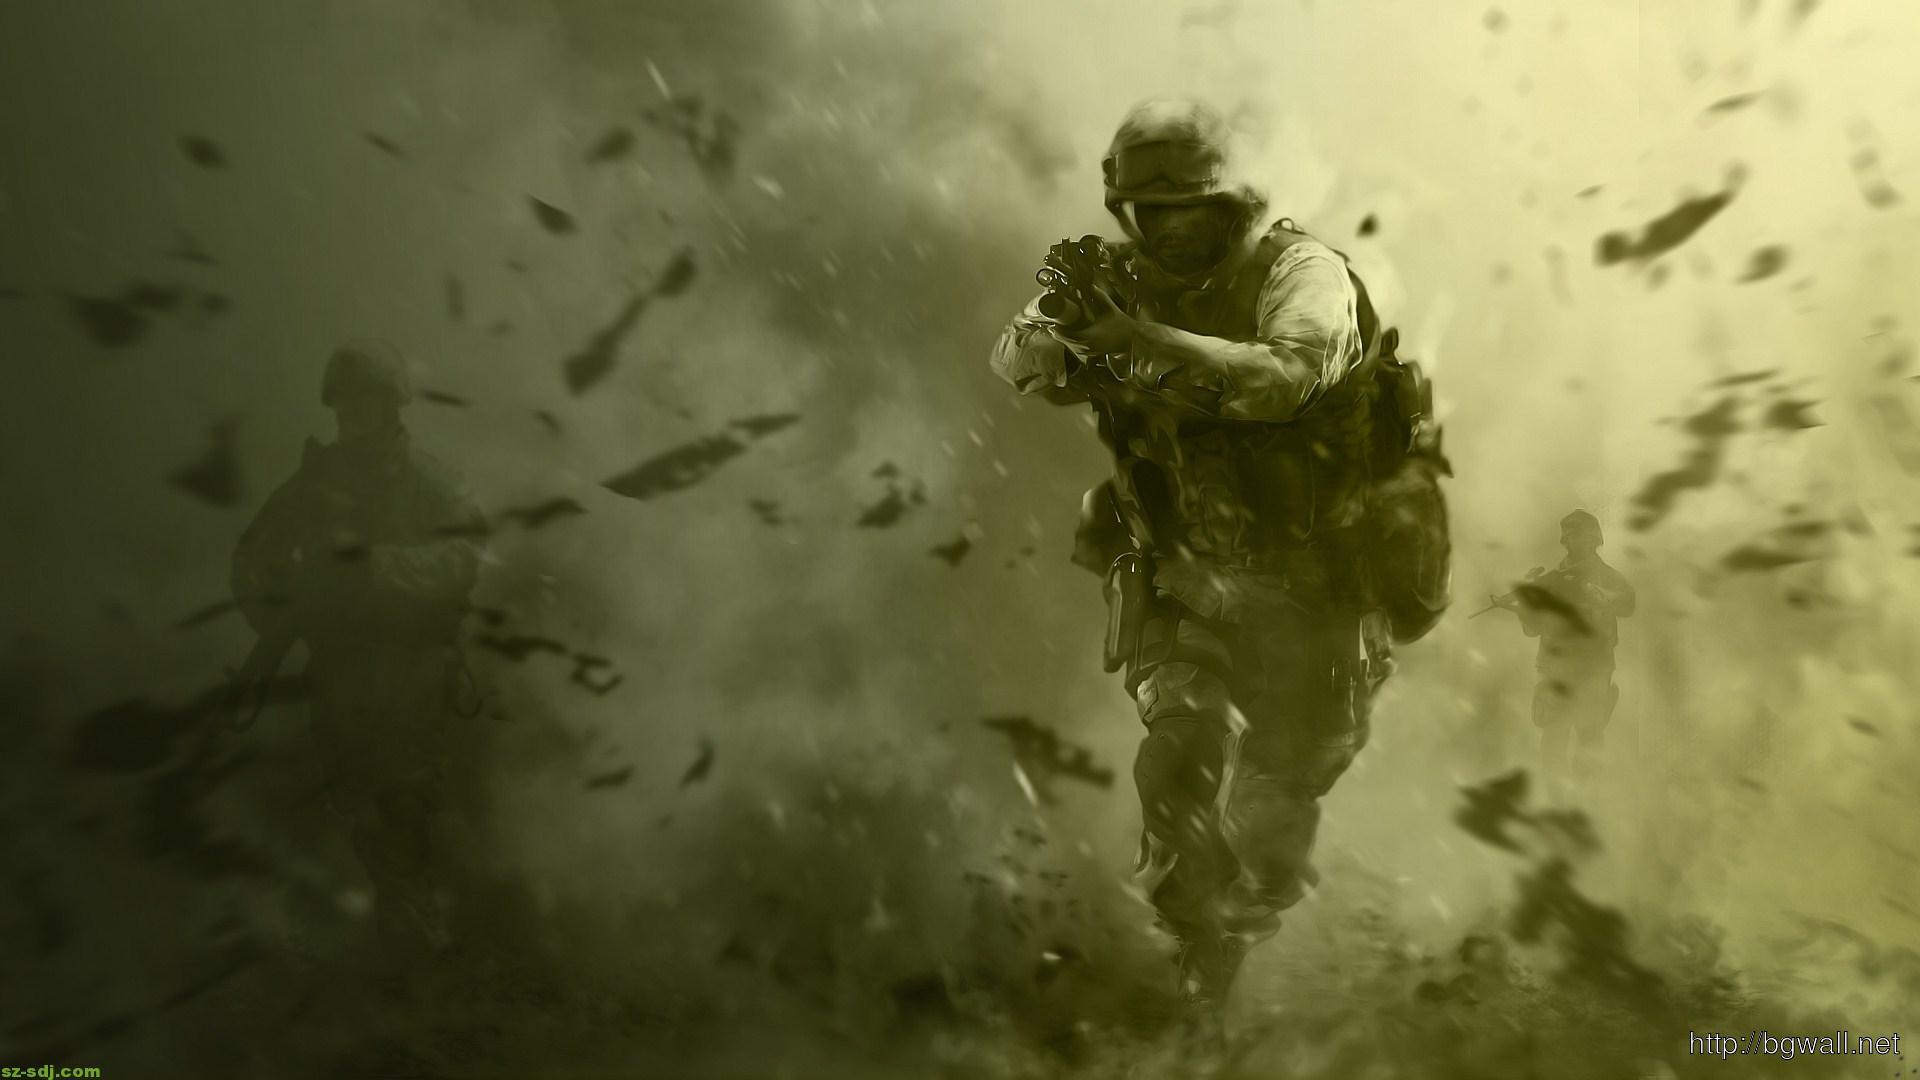 army-war-military-wallpaper-desktop